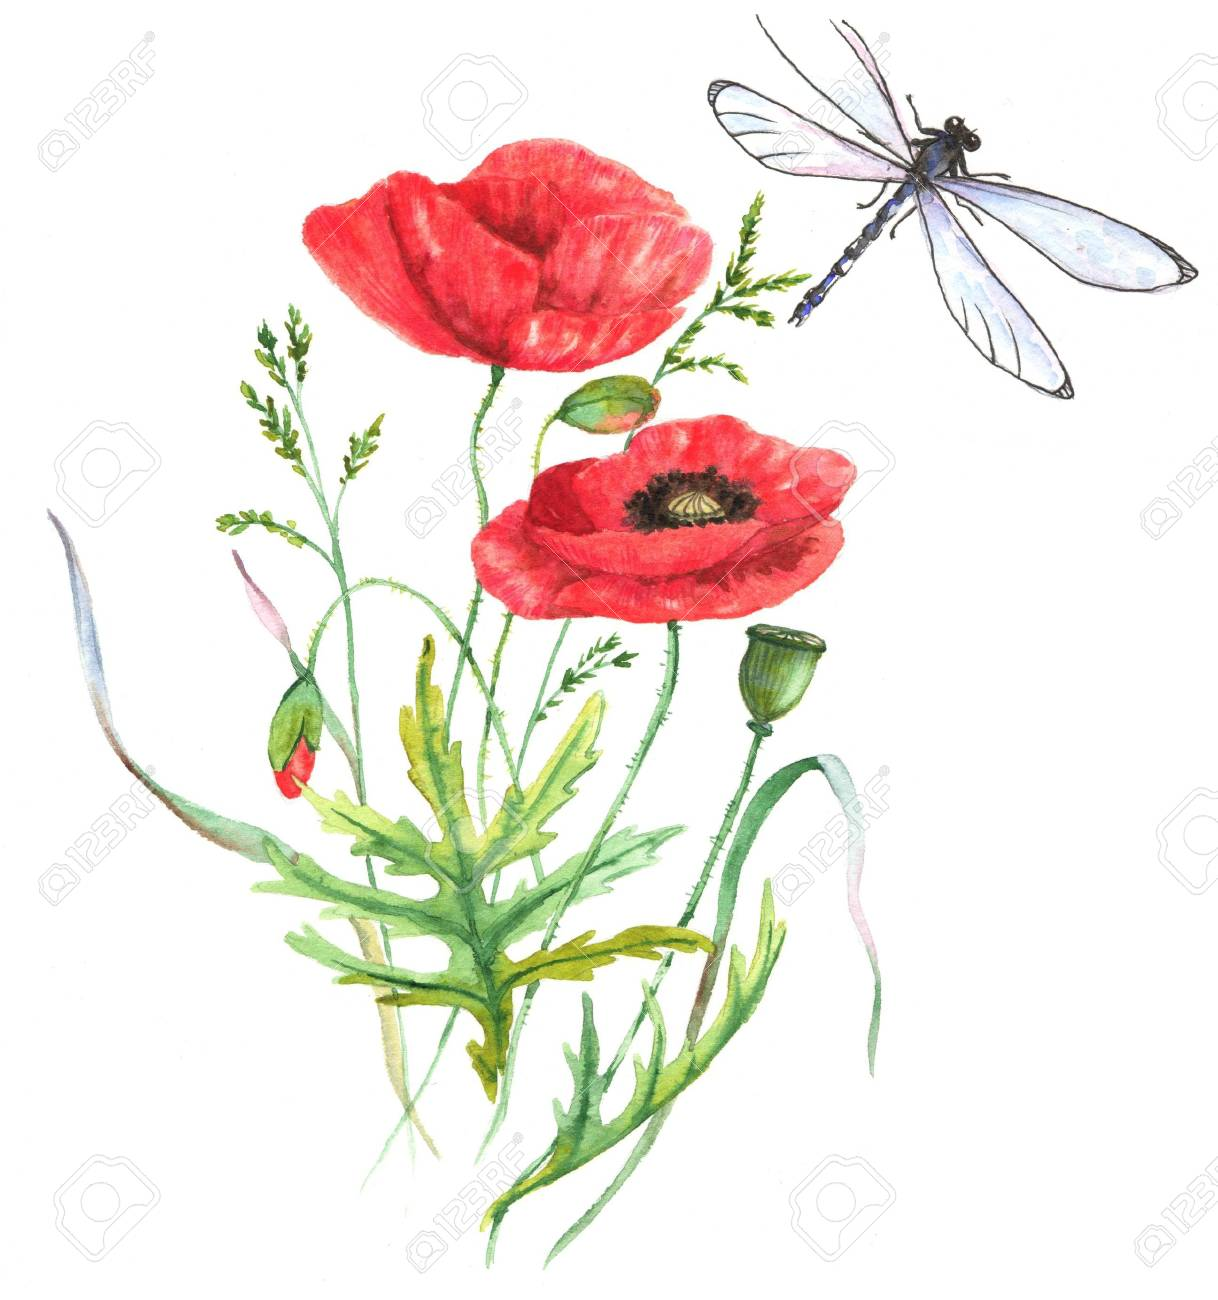 hand drawn watercolor illustration of the red summer poppy flower